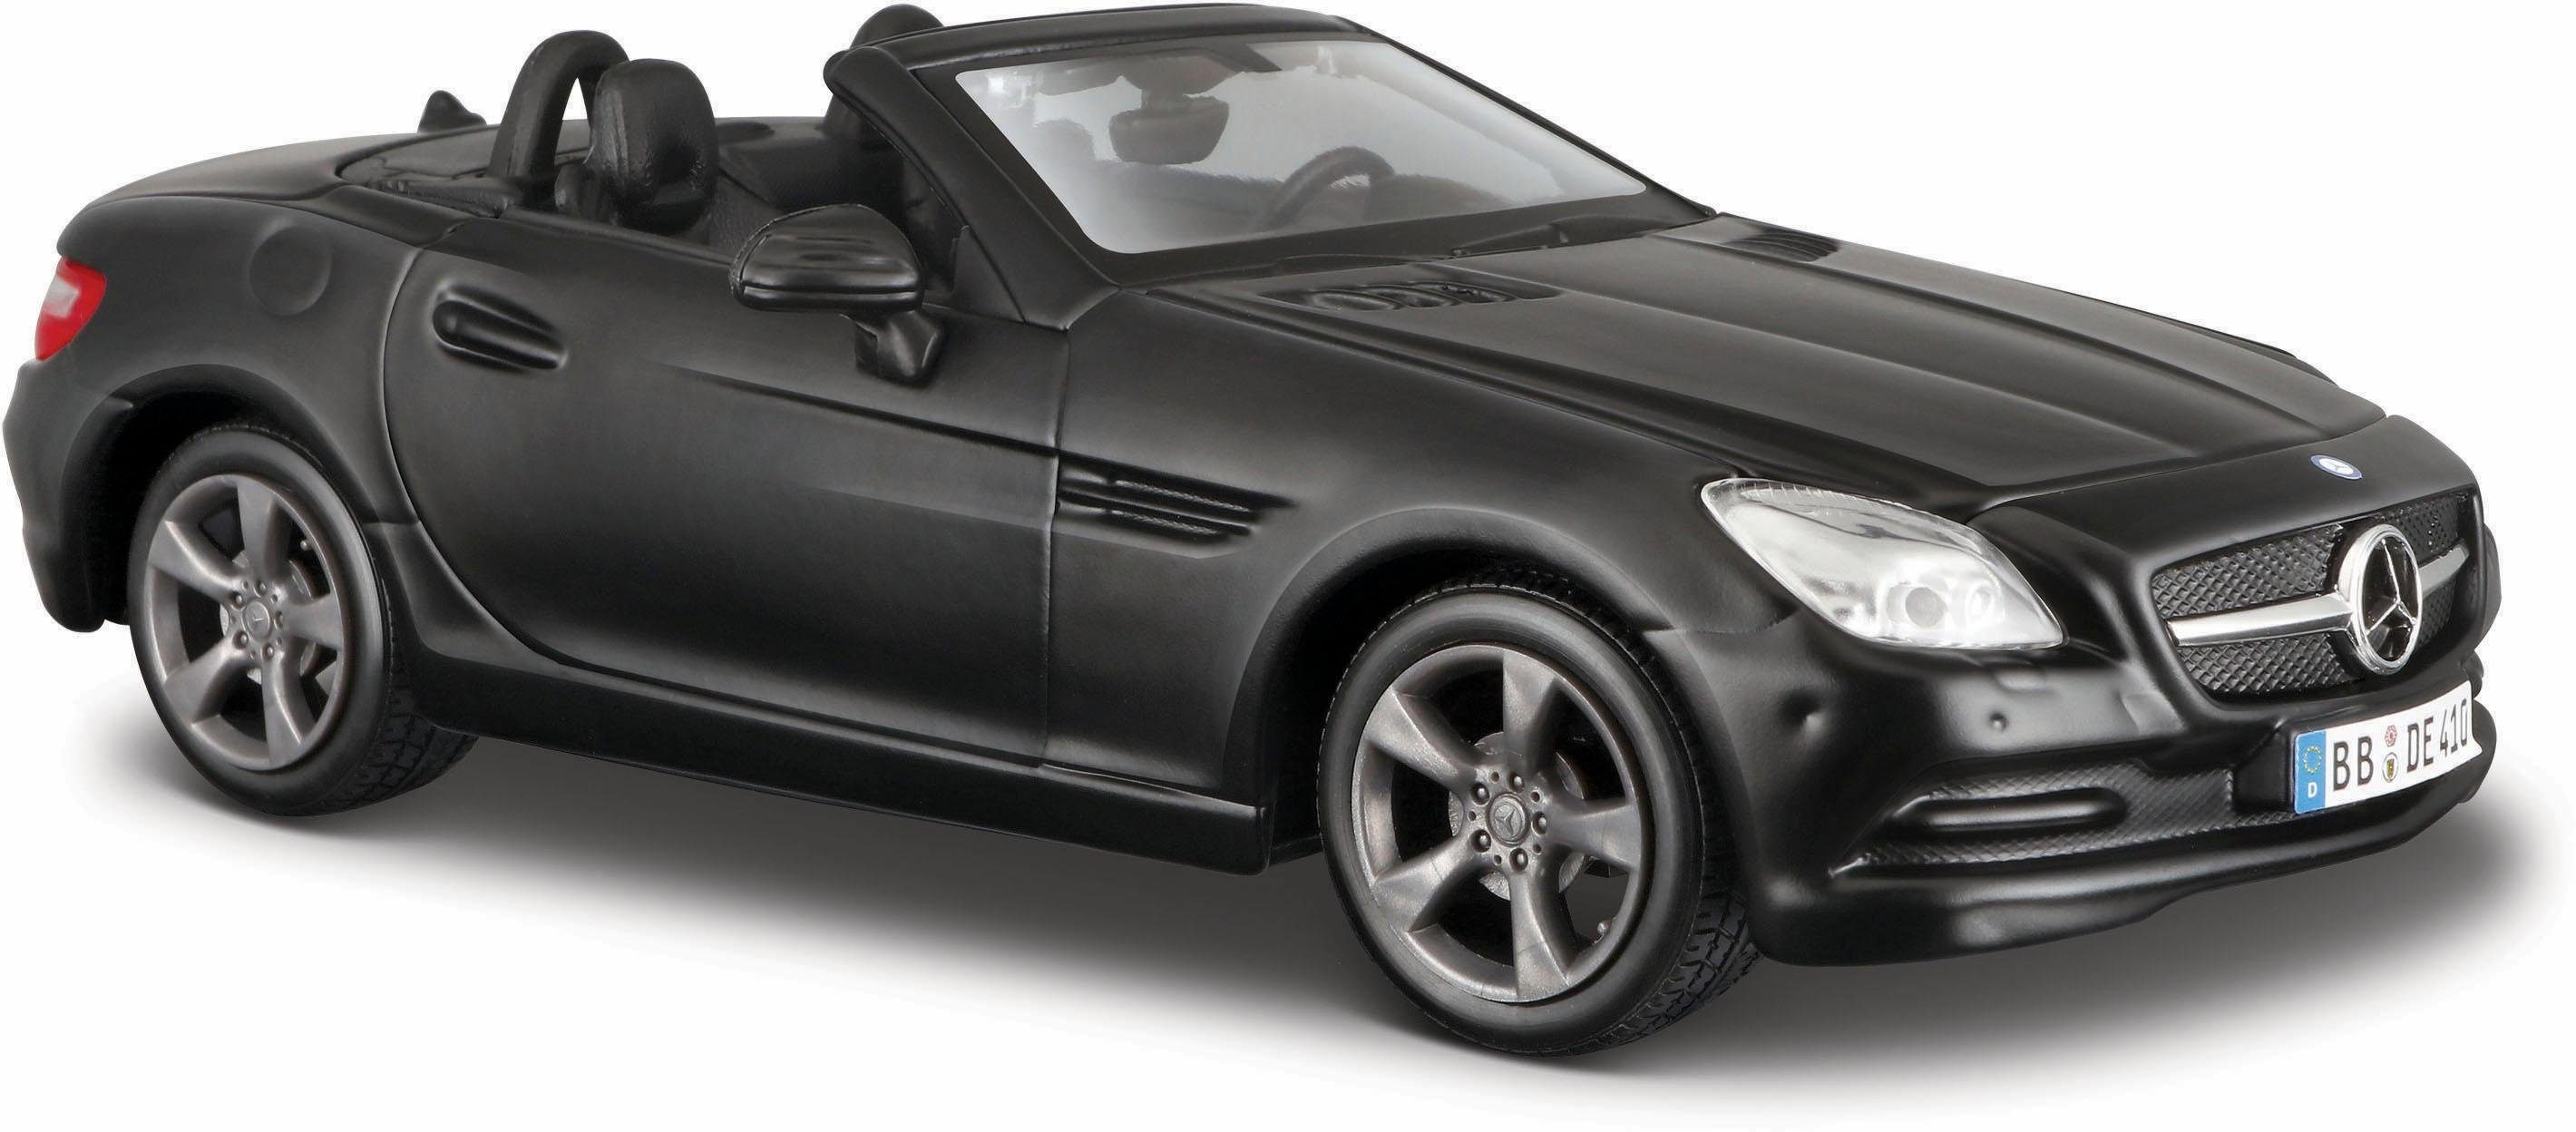 Maisto® Sammlerauto, »Dull Black Collection, Mercedes SLK 11, 1:24, schwarz«